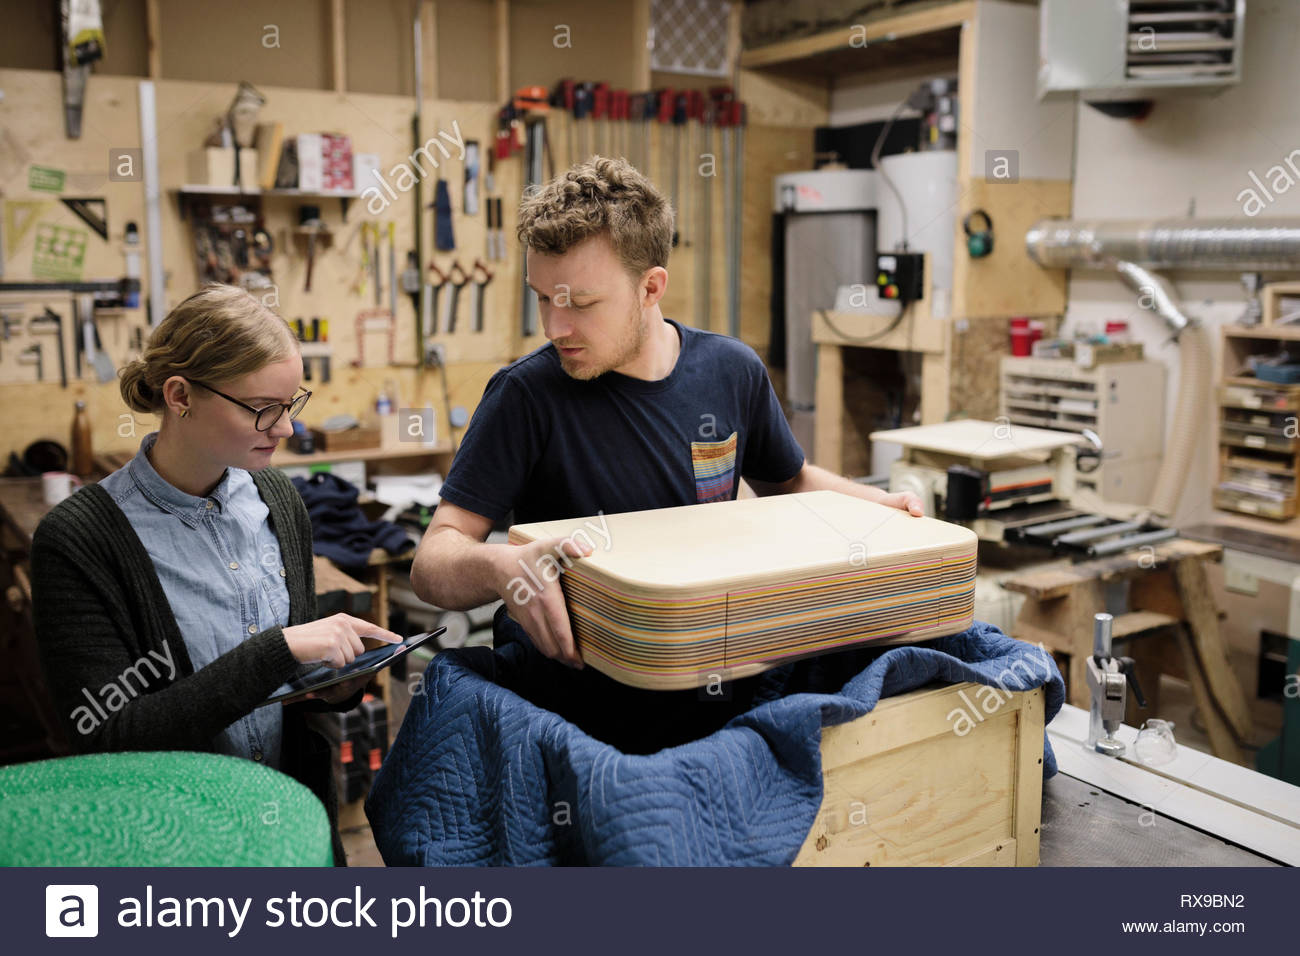 Artists with digital tablet packaging product in workshop - Stock Image